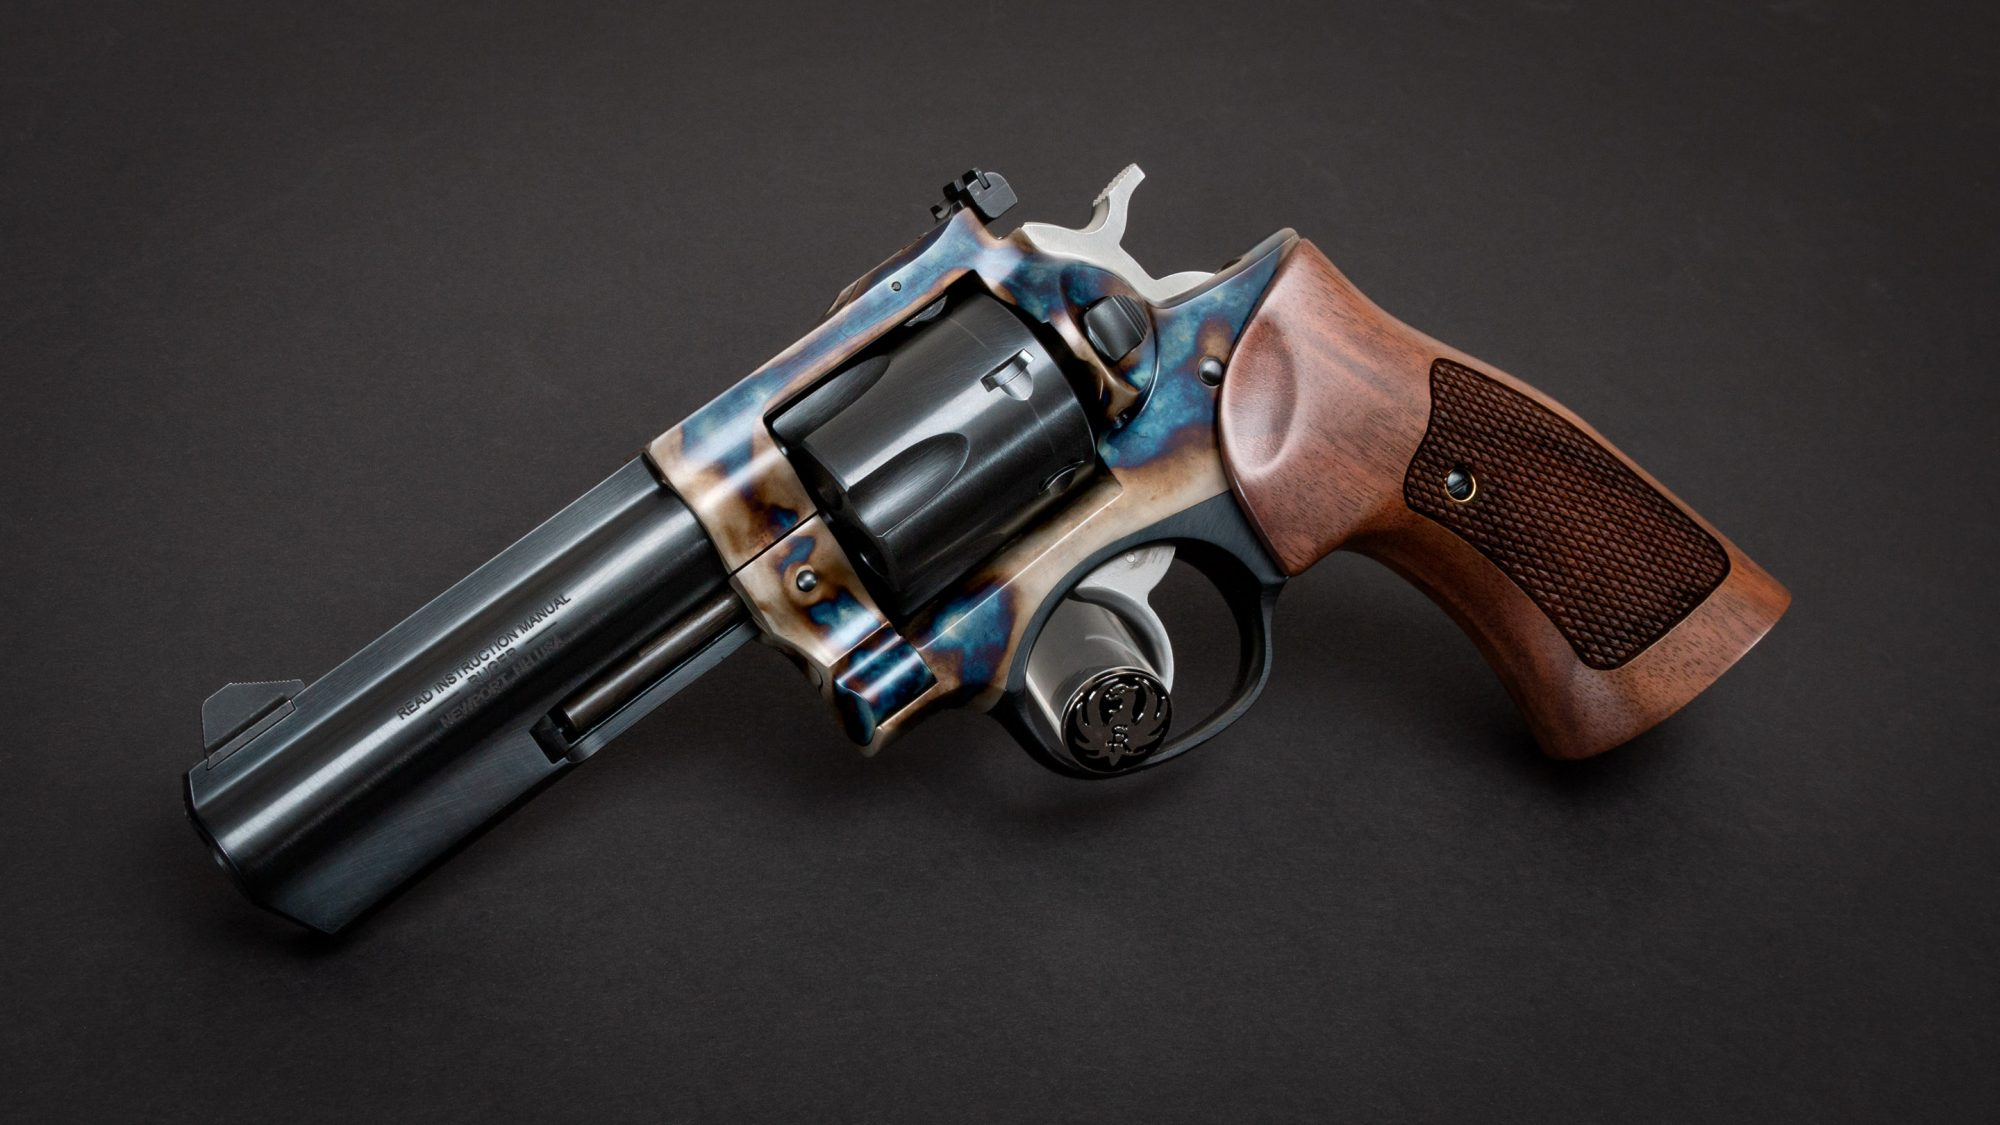 Photo of a Turnbull Finished Ruger GP100 featuring Turnbull color case hardening and Altamont checkered American walnut target grips